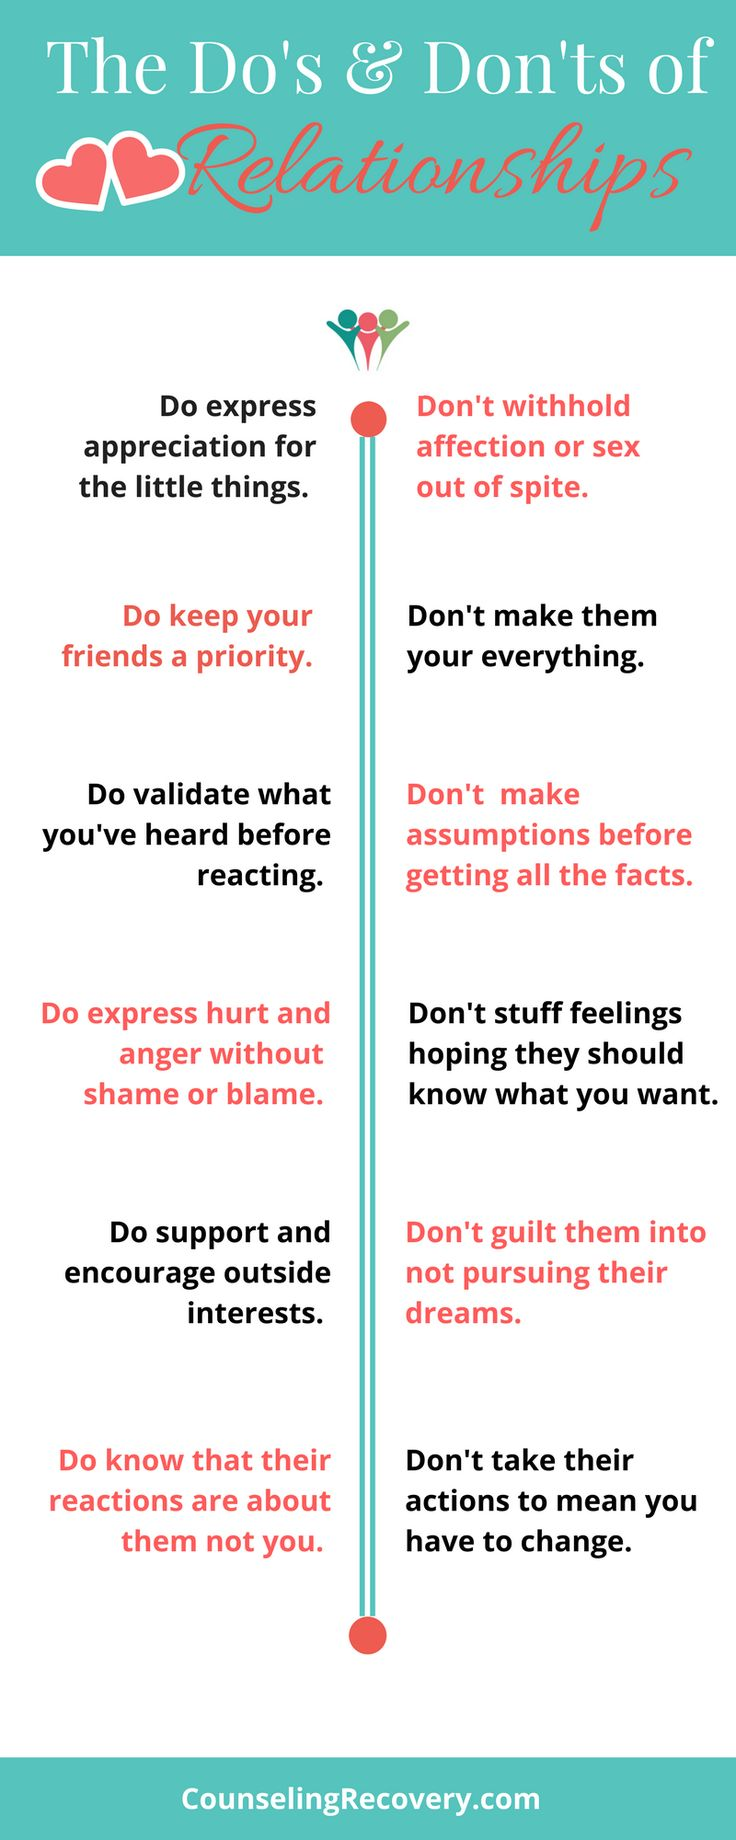 How to create healthy relationships | intimacy | relationship advice | Relationship quotes | marriage advice | codependent relationships | Click to read more. #relationshiptips #relationship